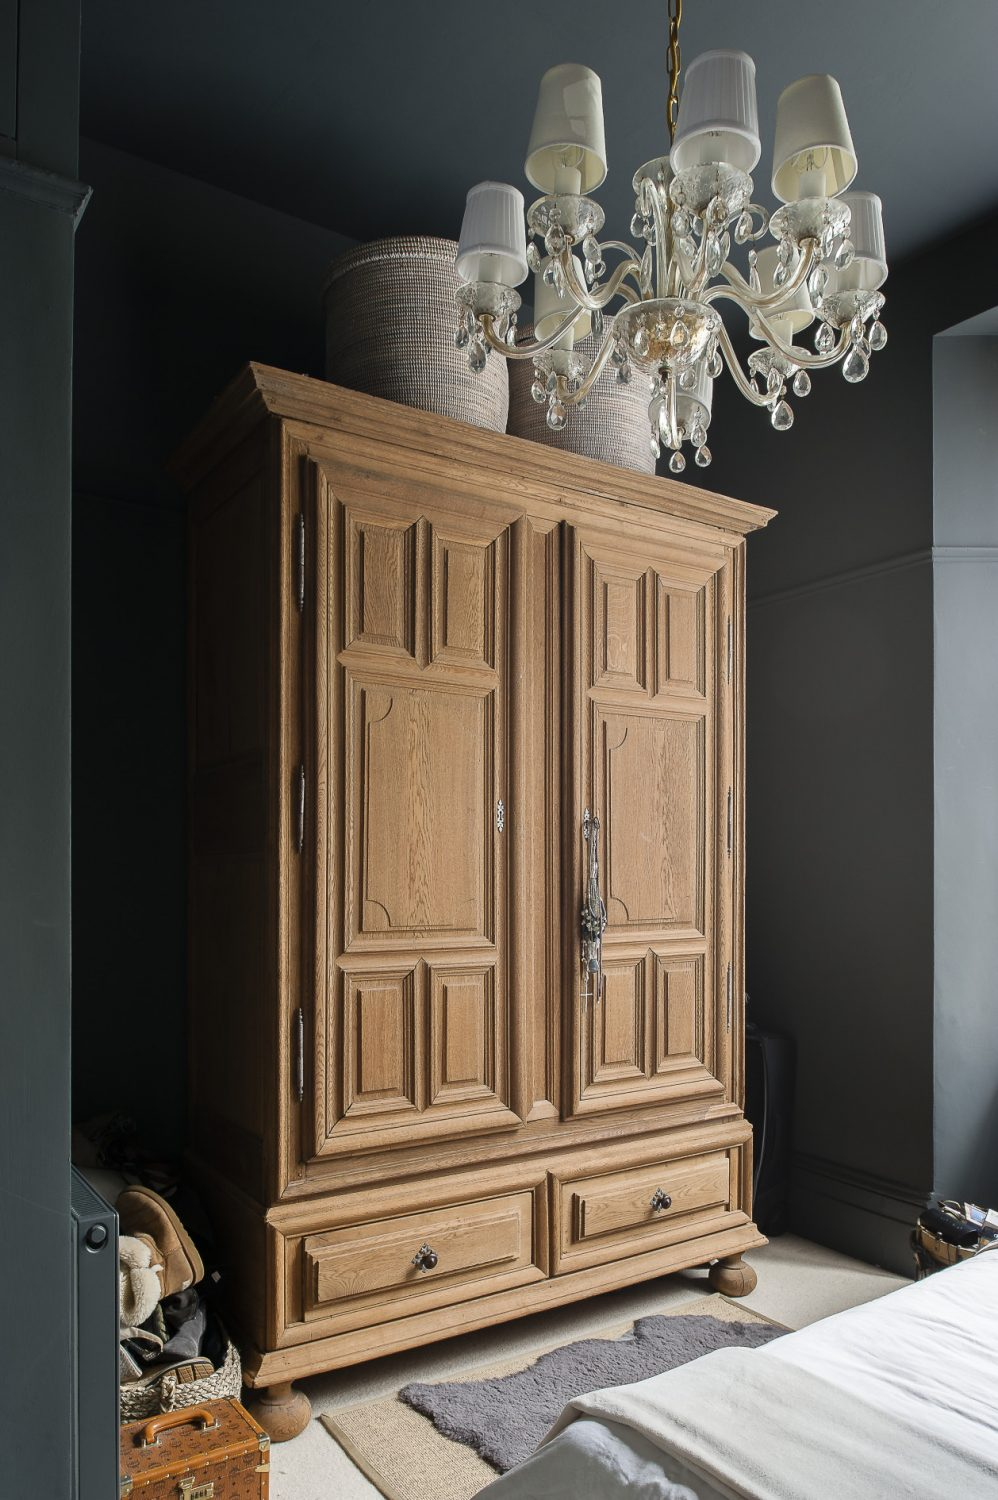 The huge armoire was a find from French Loft in Arundel